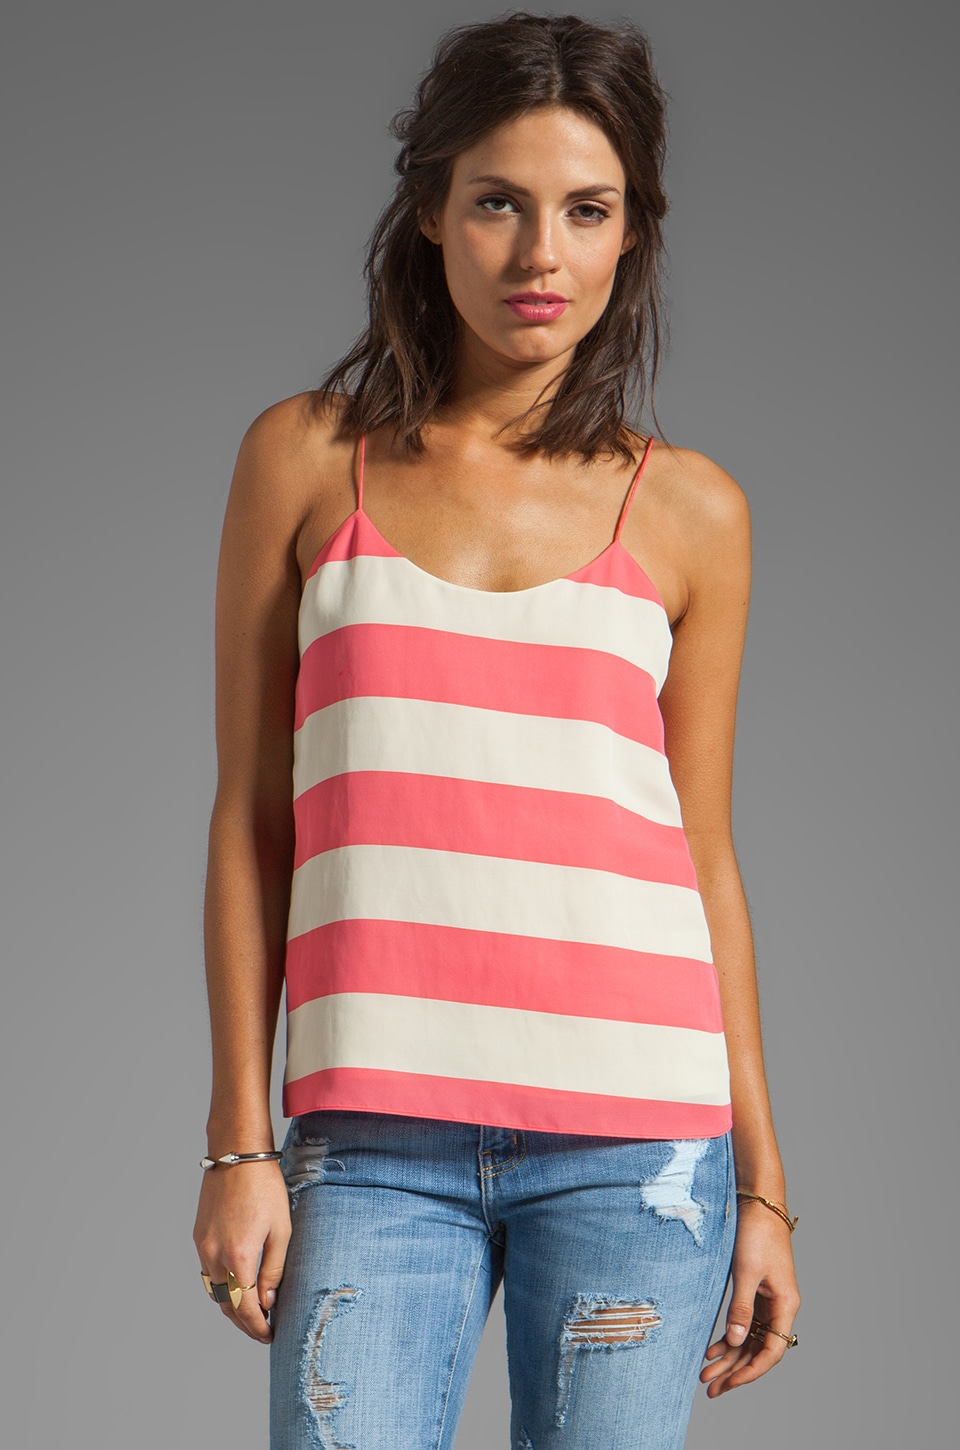 Tibi Striped Cami in Calypso Red/Tan Multi